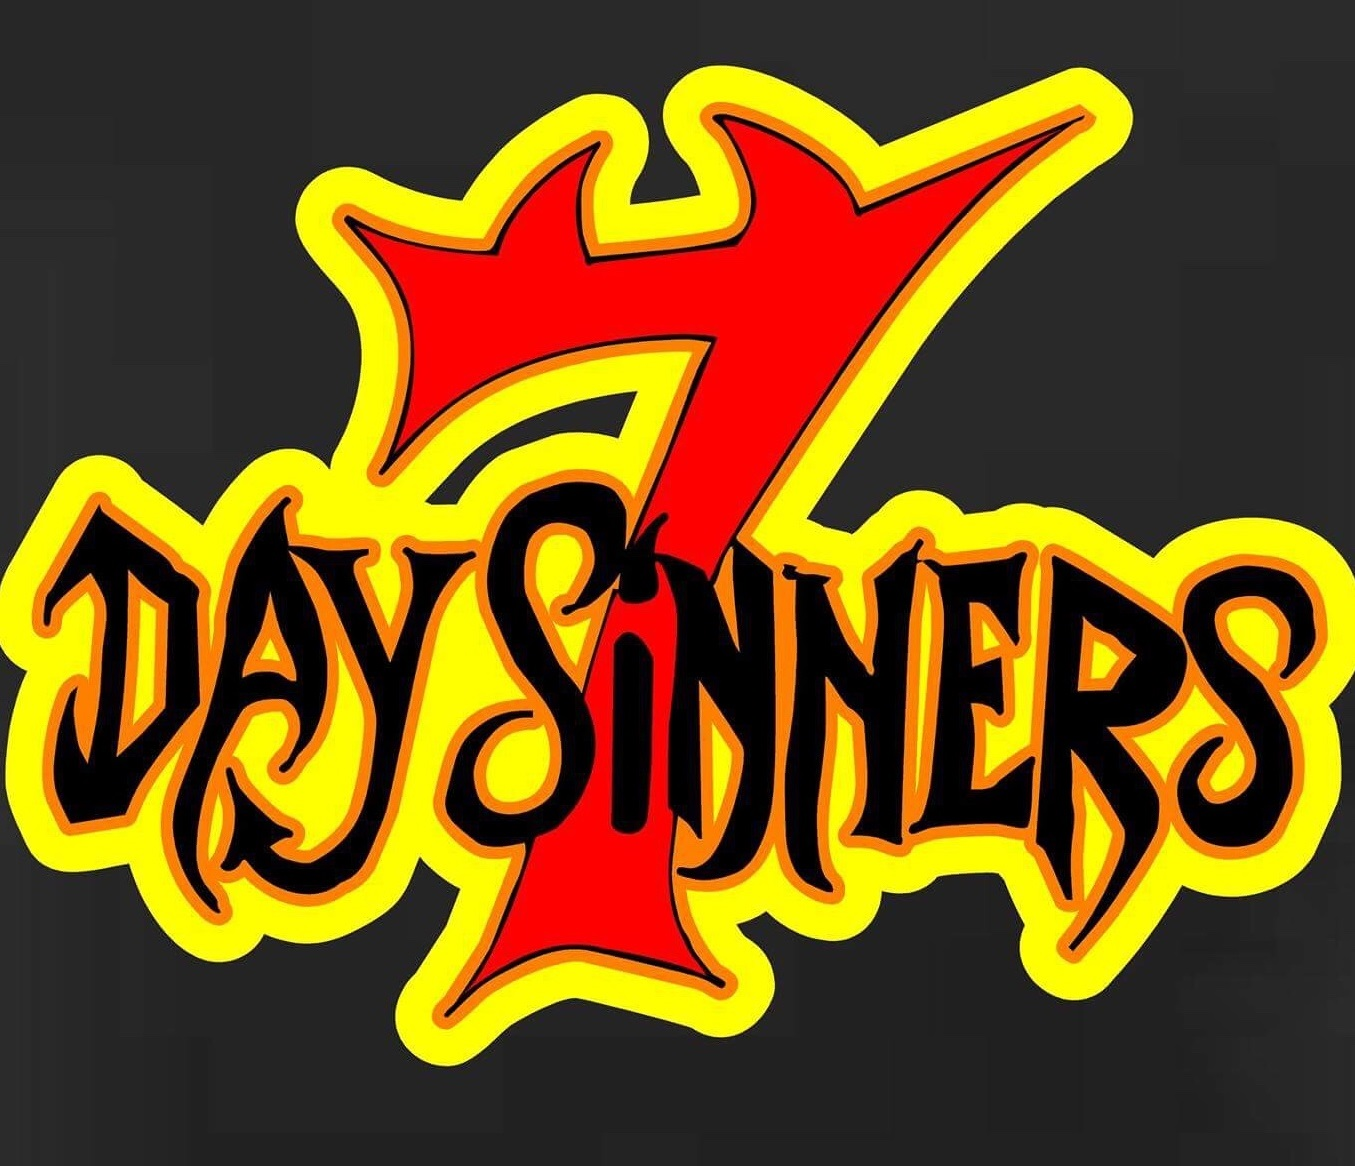 Seven Day Sinners ( 7Day Sinners ) - default icon